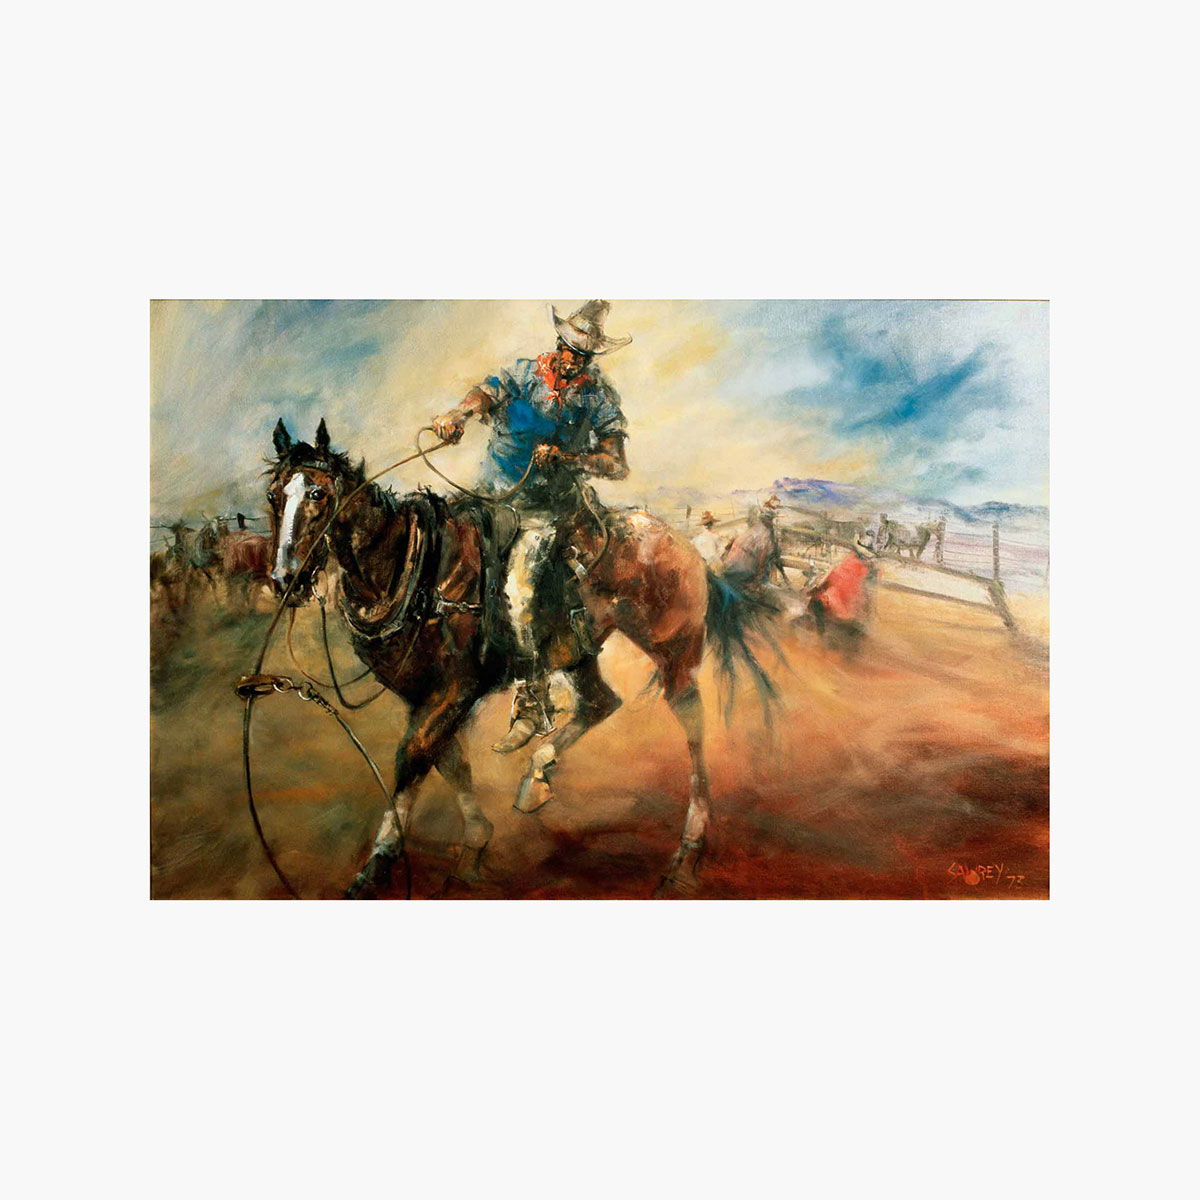 The bronco horse by hugh sawrey 20x30in giclée on canvas print